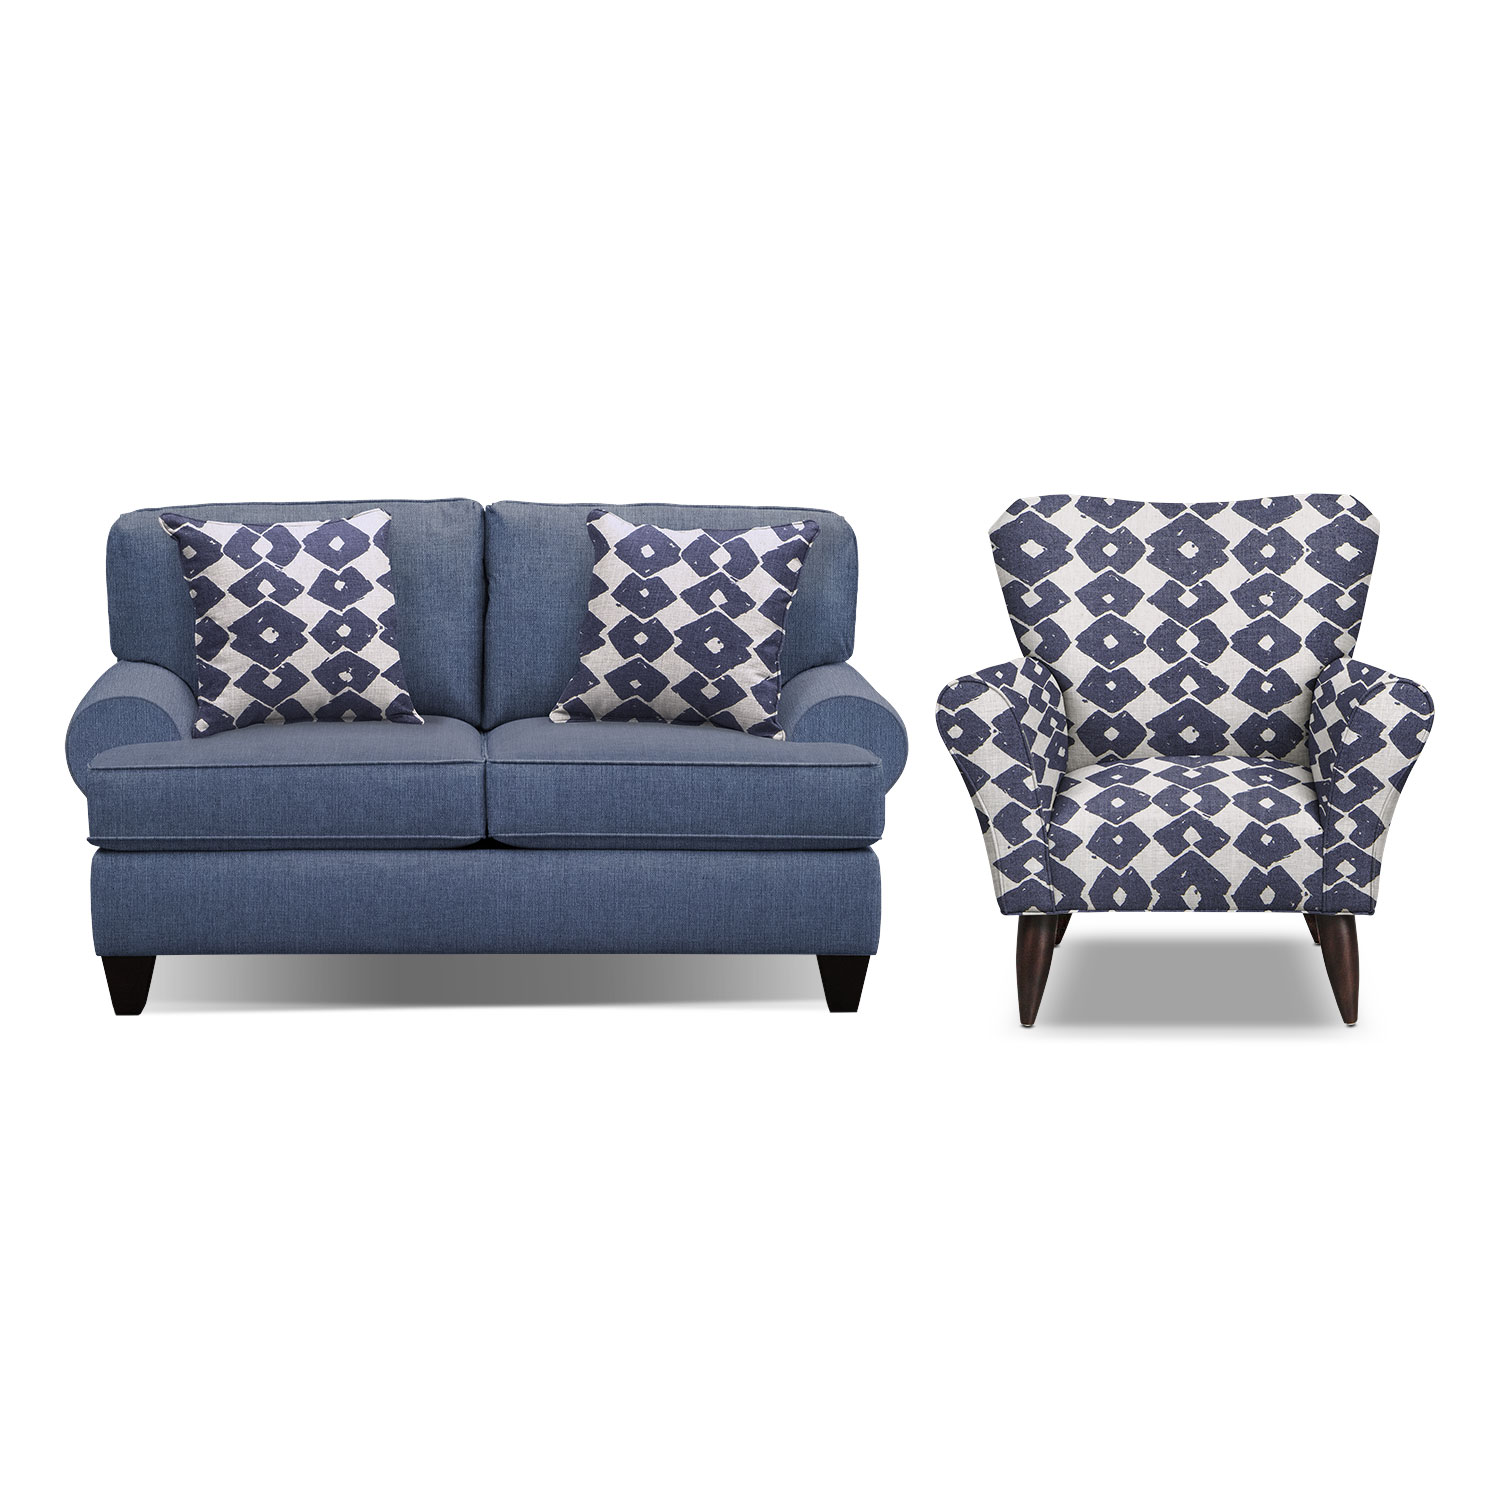 "Living Room Furniture - Bailey Blue 67"" Sofa and Accent Chair Set"